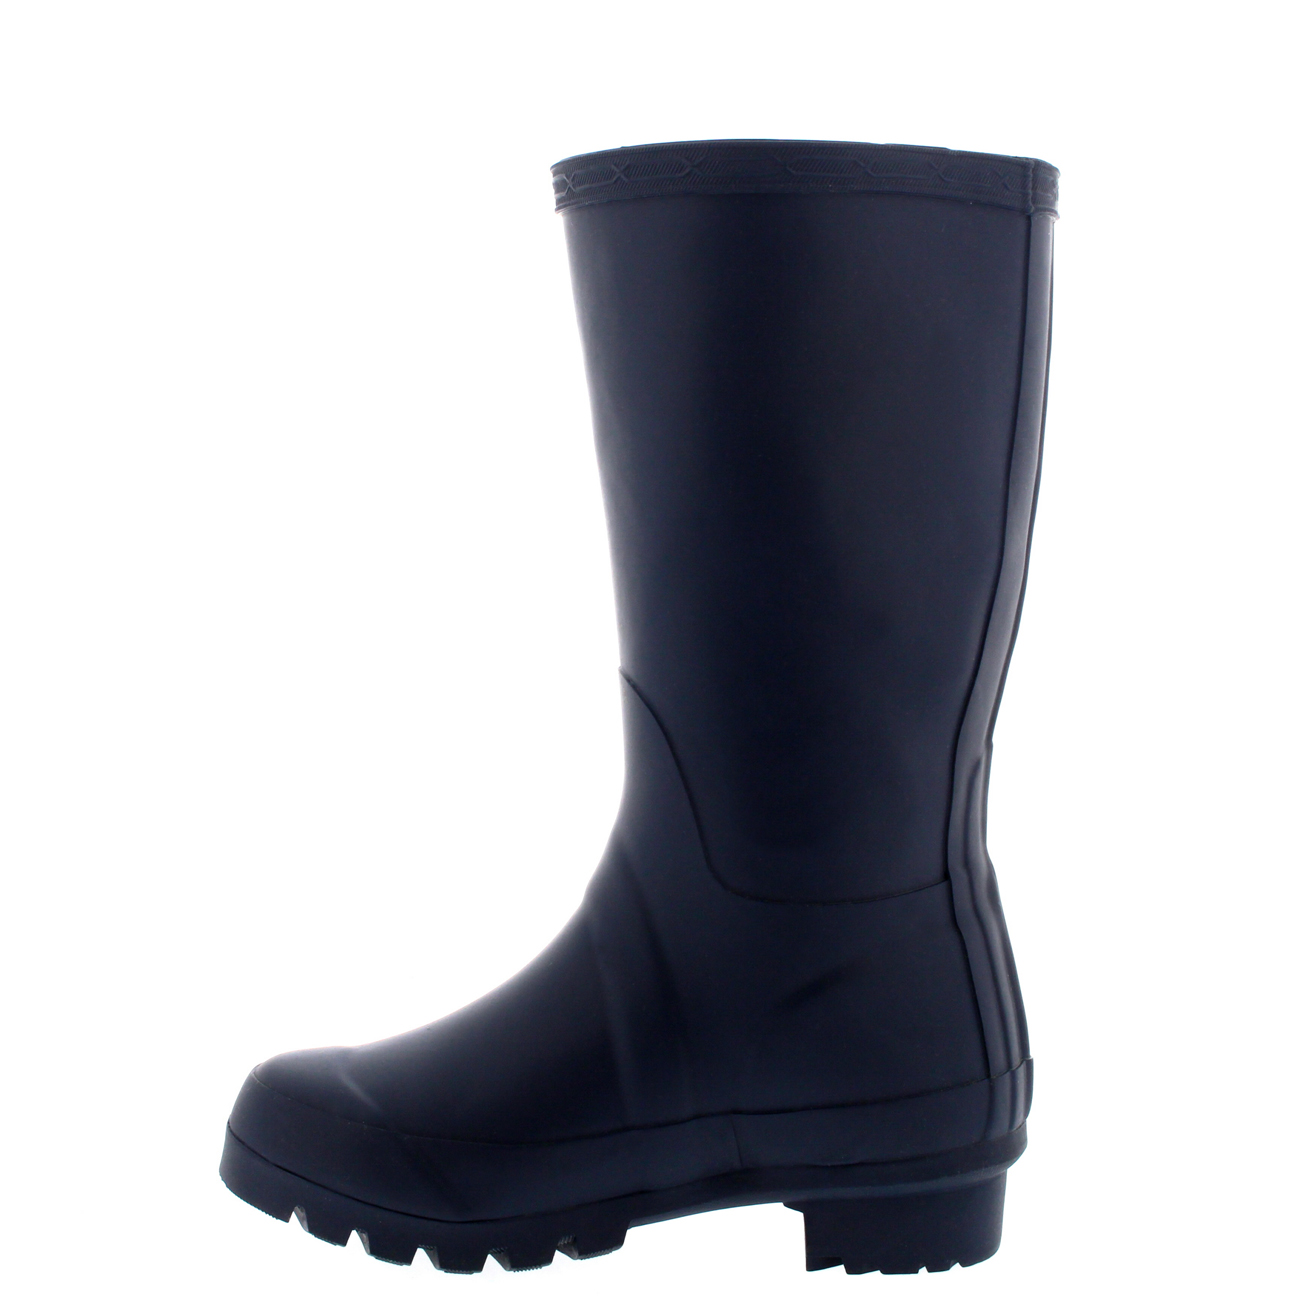 Unisex-Kids-Original-Rubber-Snow-Winter-Waterproof-Welly-Rain-Boots-All-Sizes